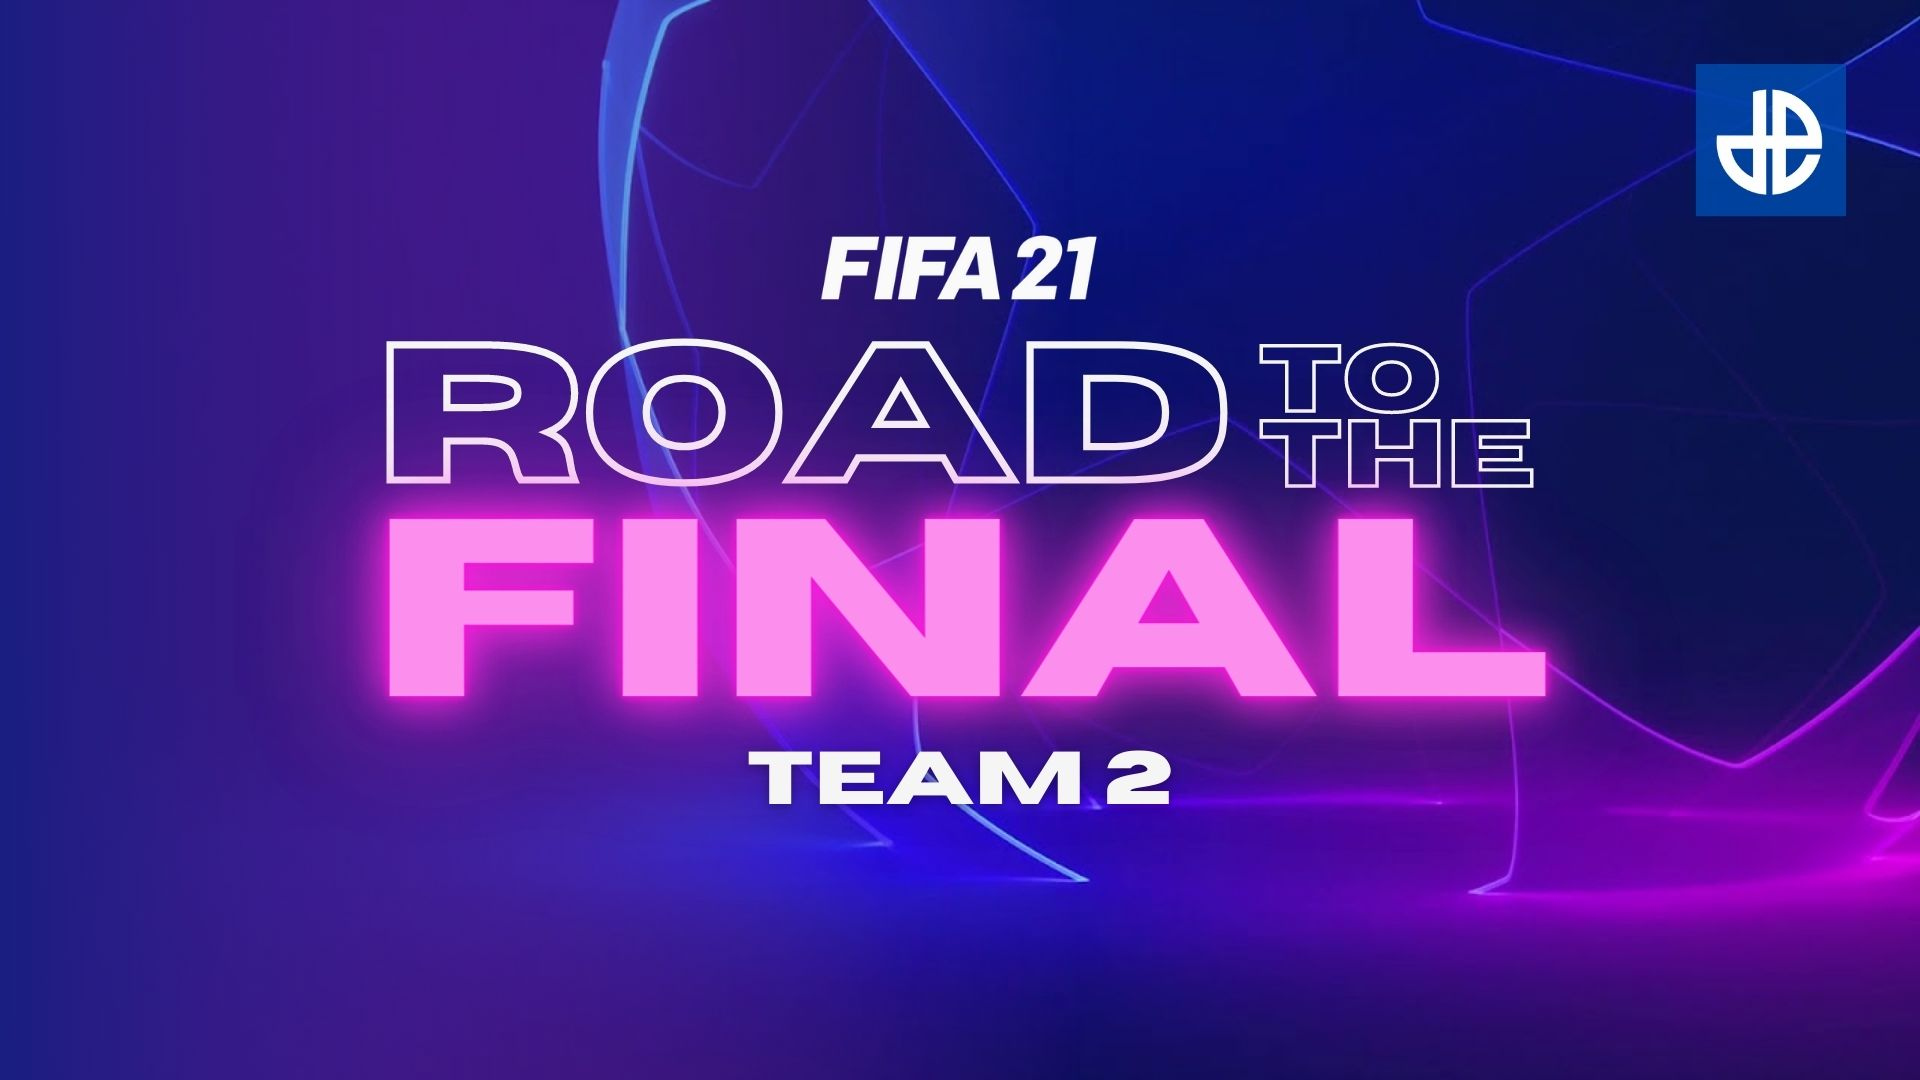 FIFA 21 Road to the Final Team 2 promo image.